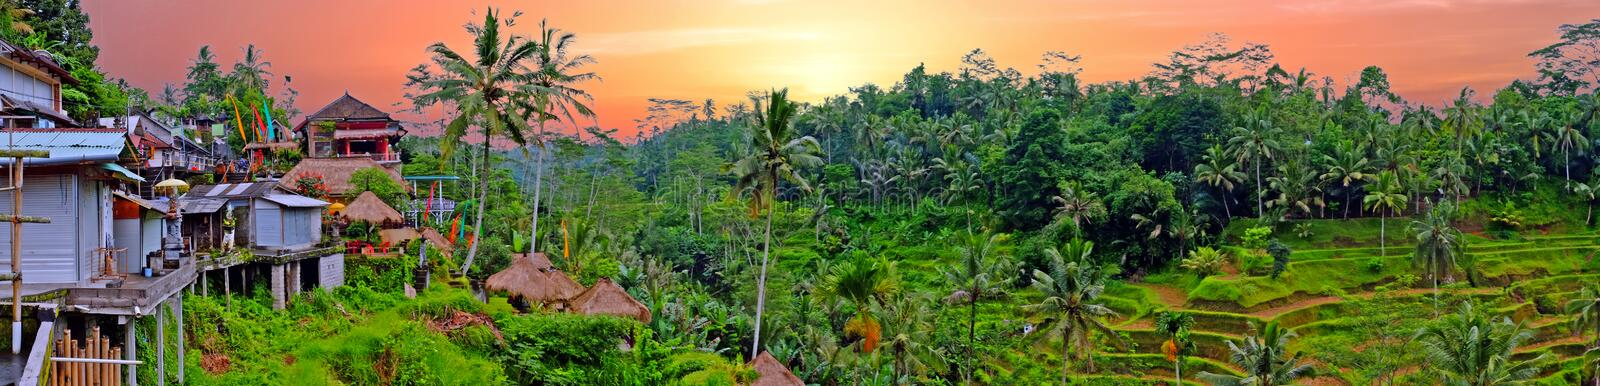 Panorama from a landscape on Bali Indonesia at sunset stock photos